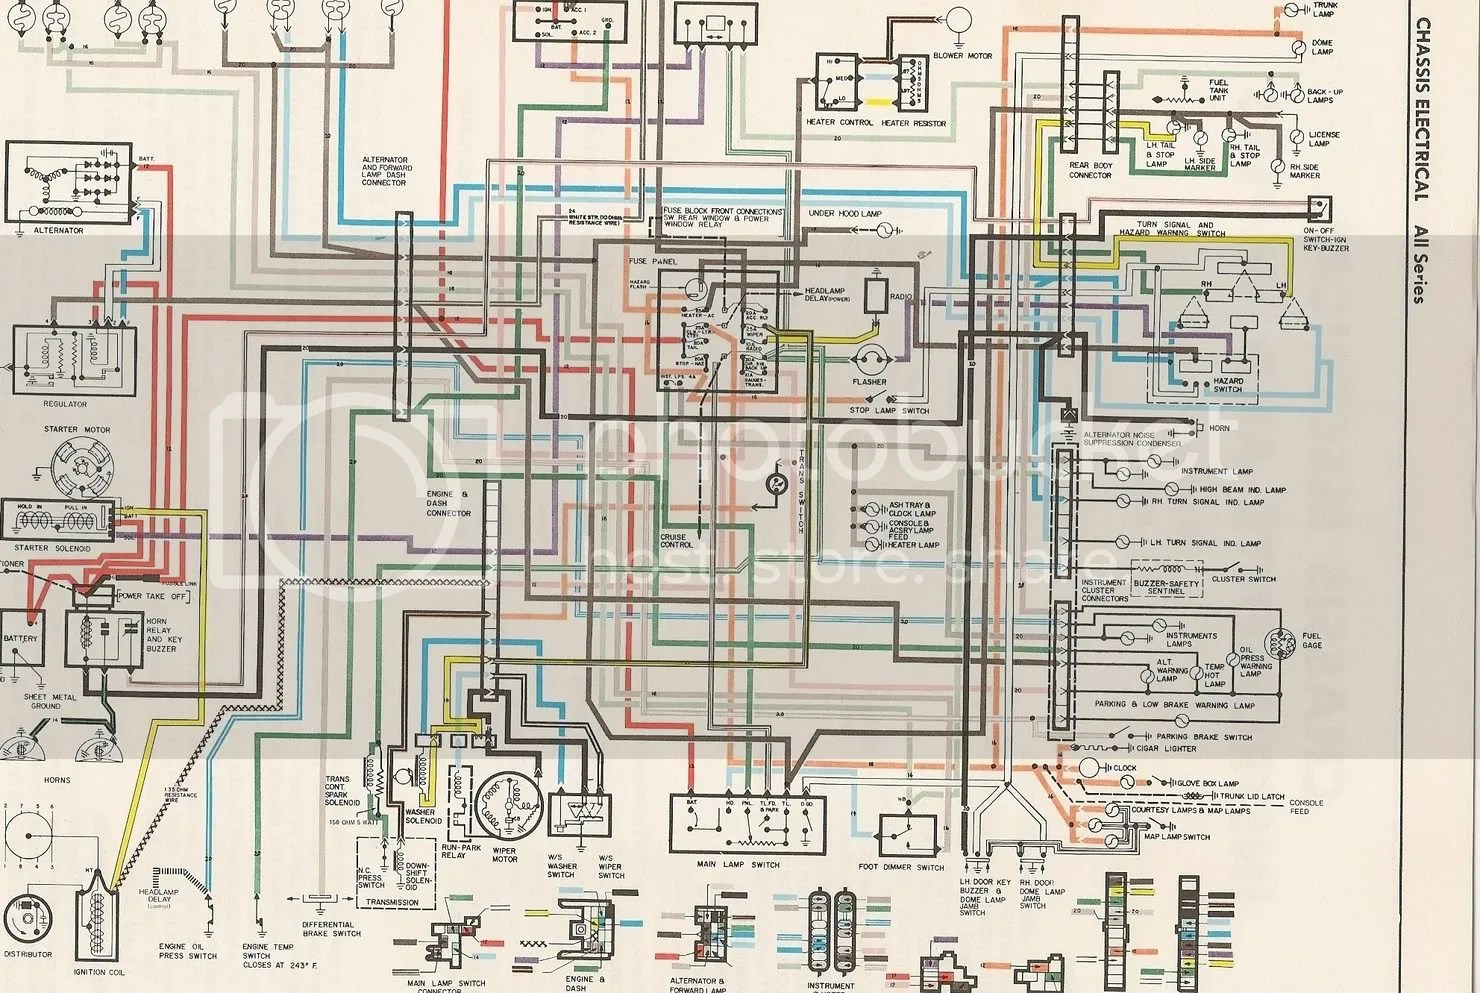 hight resolution of oldsmobile wiring harness wiring diagram data name 1971 oldsmobile cutlass wiring harness 1971 oldsmobile 442 wiring harness